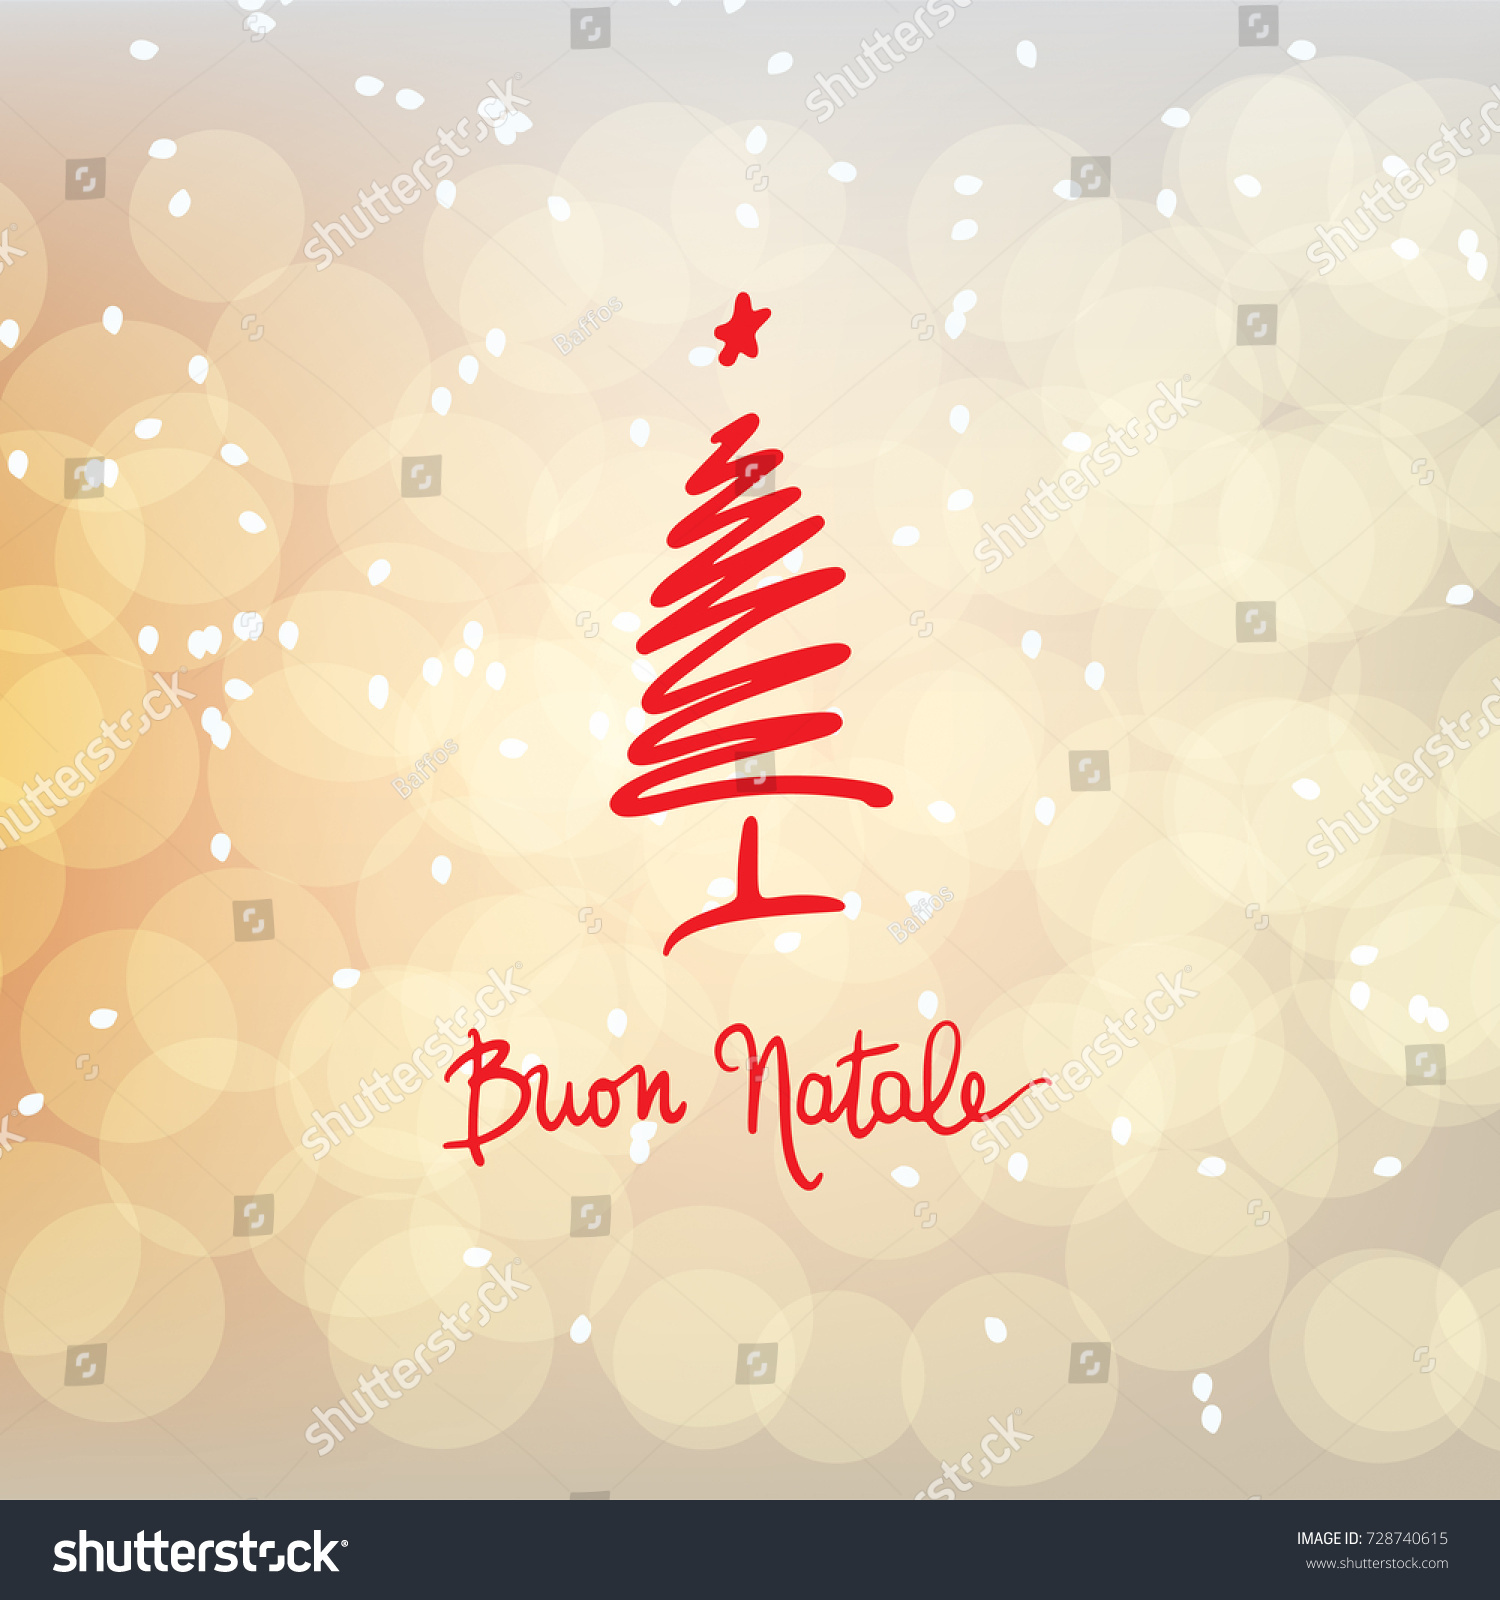 Royalty Free Stock Illustration of Buon Natale Merry Christmas ...